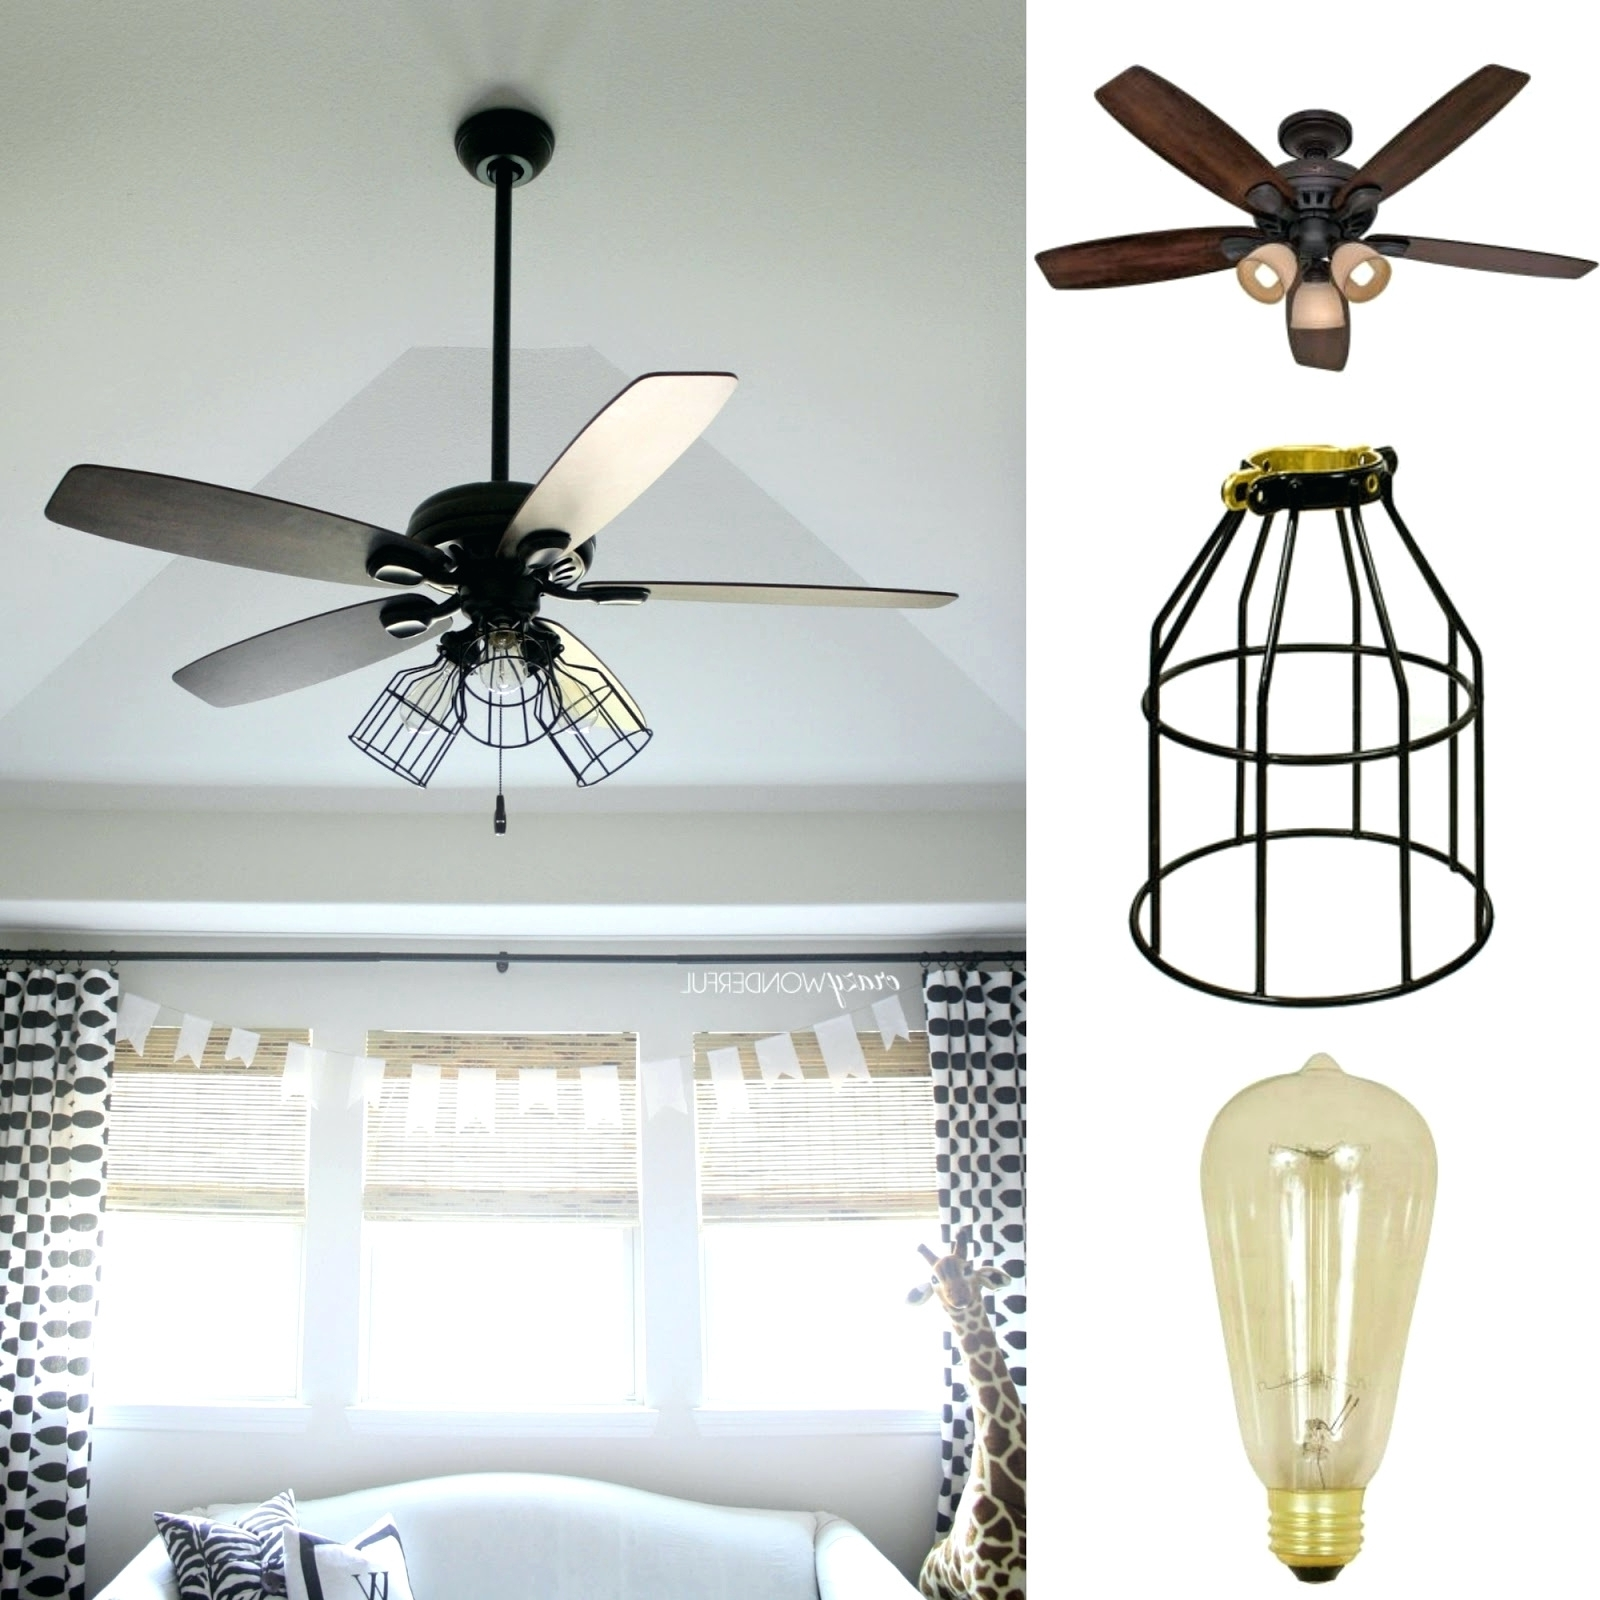 Beacon Lighting Wooden Ceiling Fans 10 Benefits Of Pendant Light Inside Famous Outdoor Ceiling Fan Beacon Lighting (View 17 of 20)